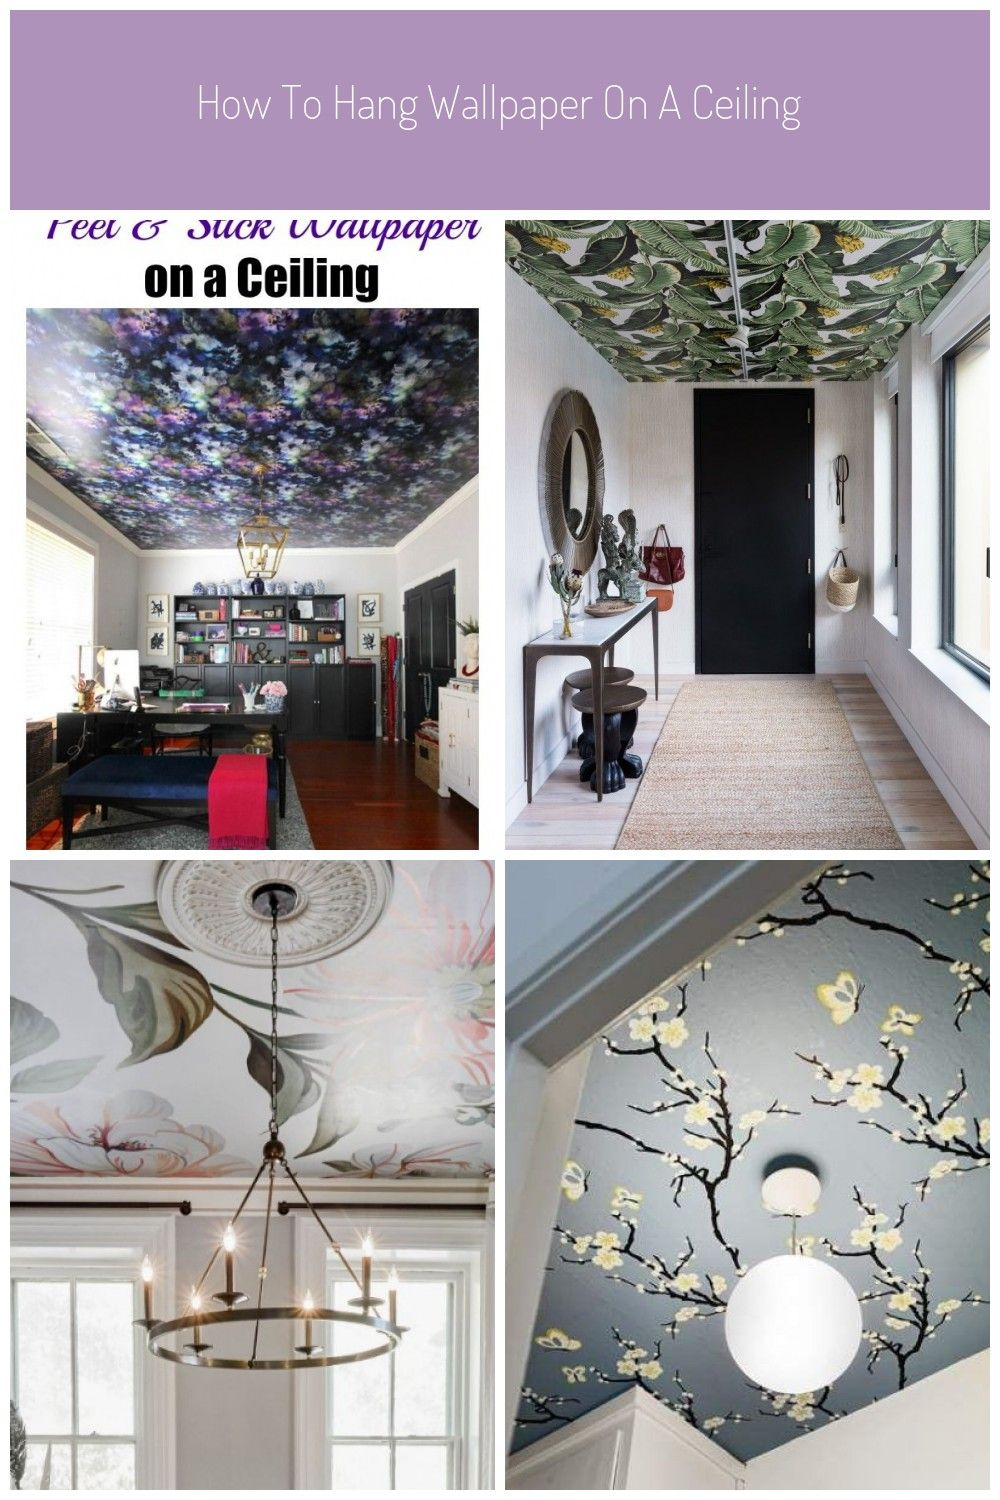 Peel And Stick Wallpaper Can Be Used On Walls Ceilings Furniture Home Decor Pieces You Name It See This Tutorial On How To Hang Wallpaper On A Ceiling Happy Fr